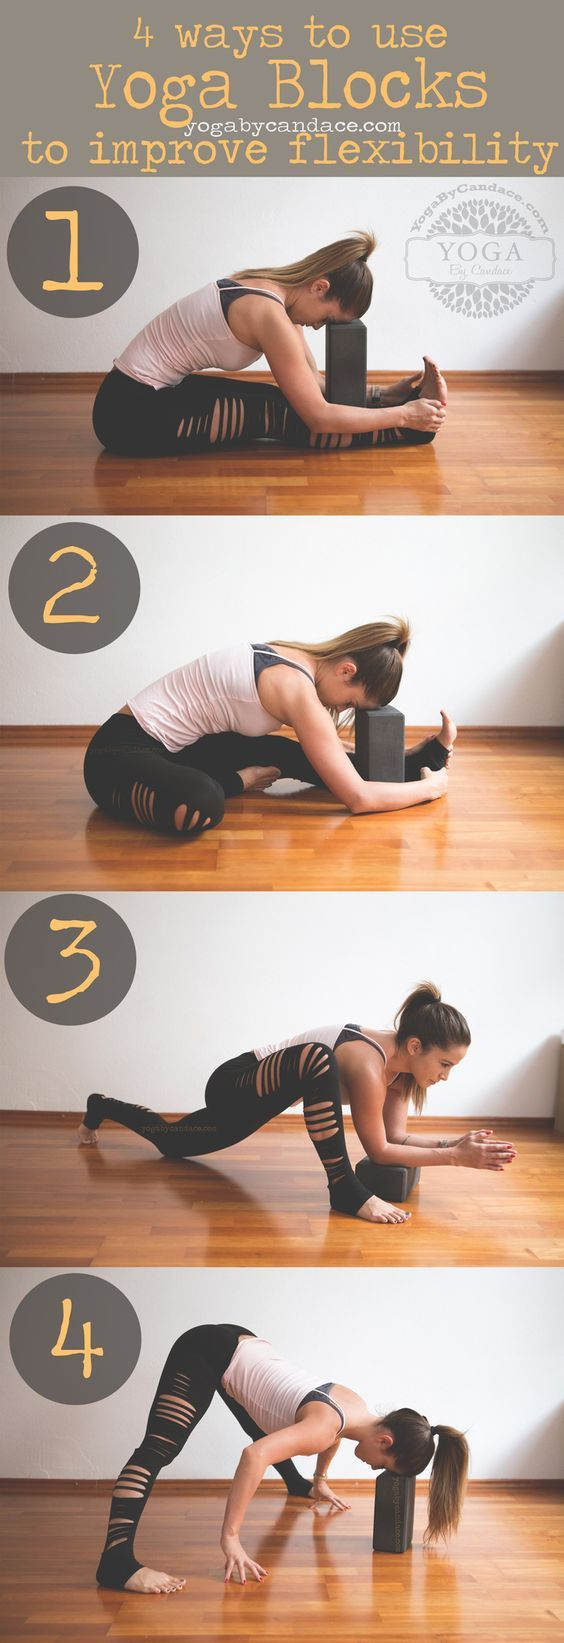 4 Ways to Use Yoga Blocks to Improve Flexibility